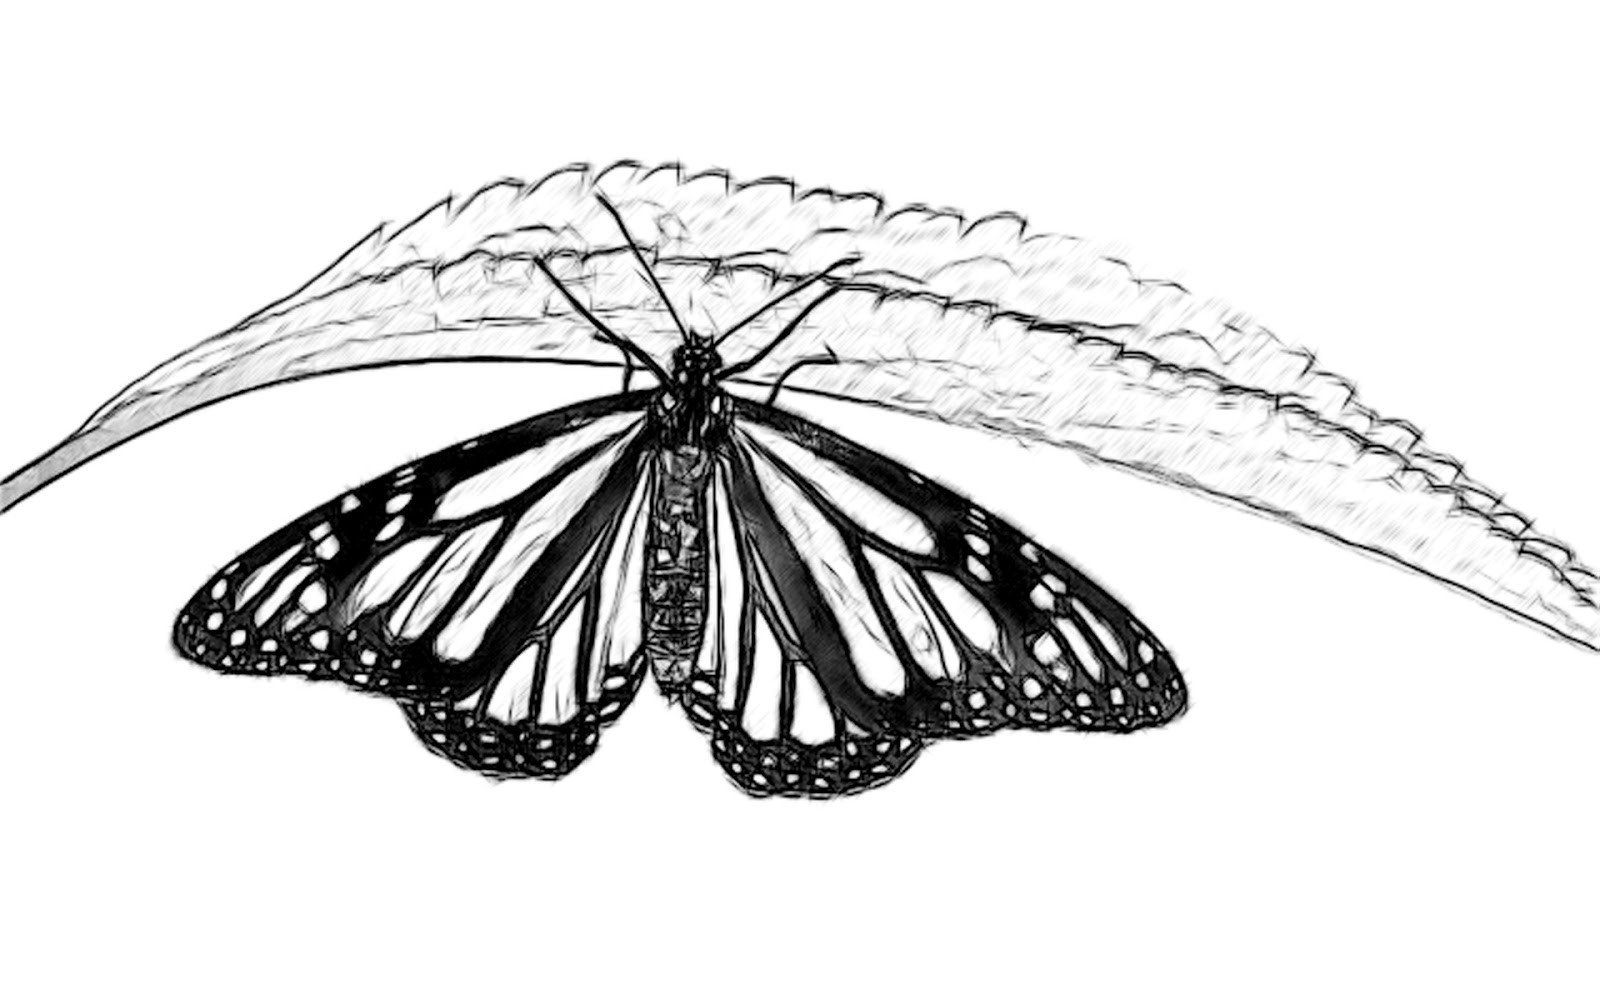 Butterfly Drawings In Pencil Line Drawing Pencil and Charcoal Art Galleries butterfly